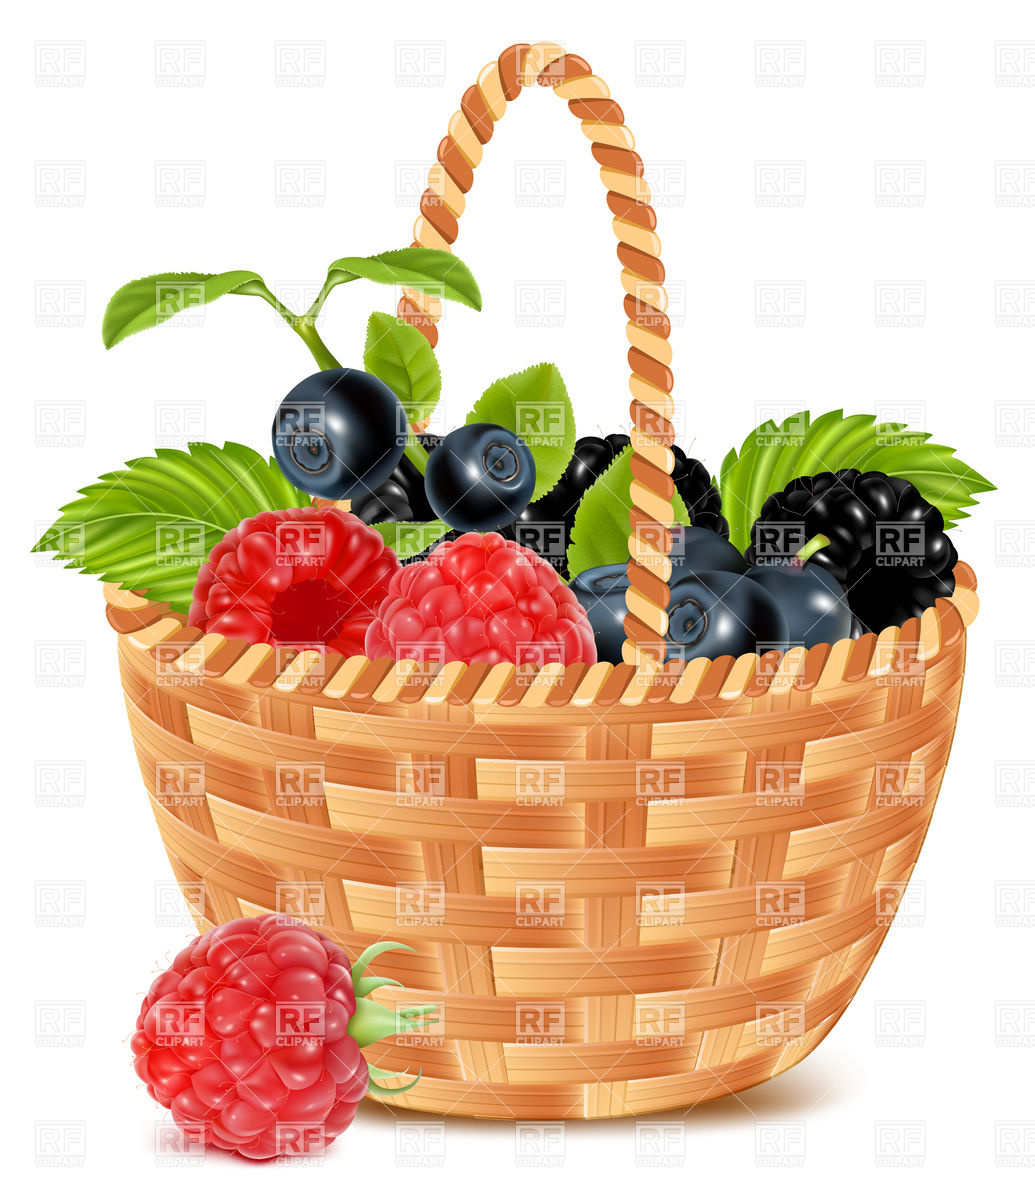 Ripe forest berries in the basket Vector Image #4962.